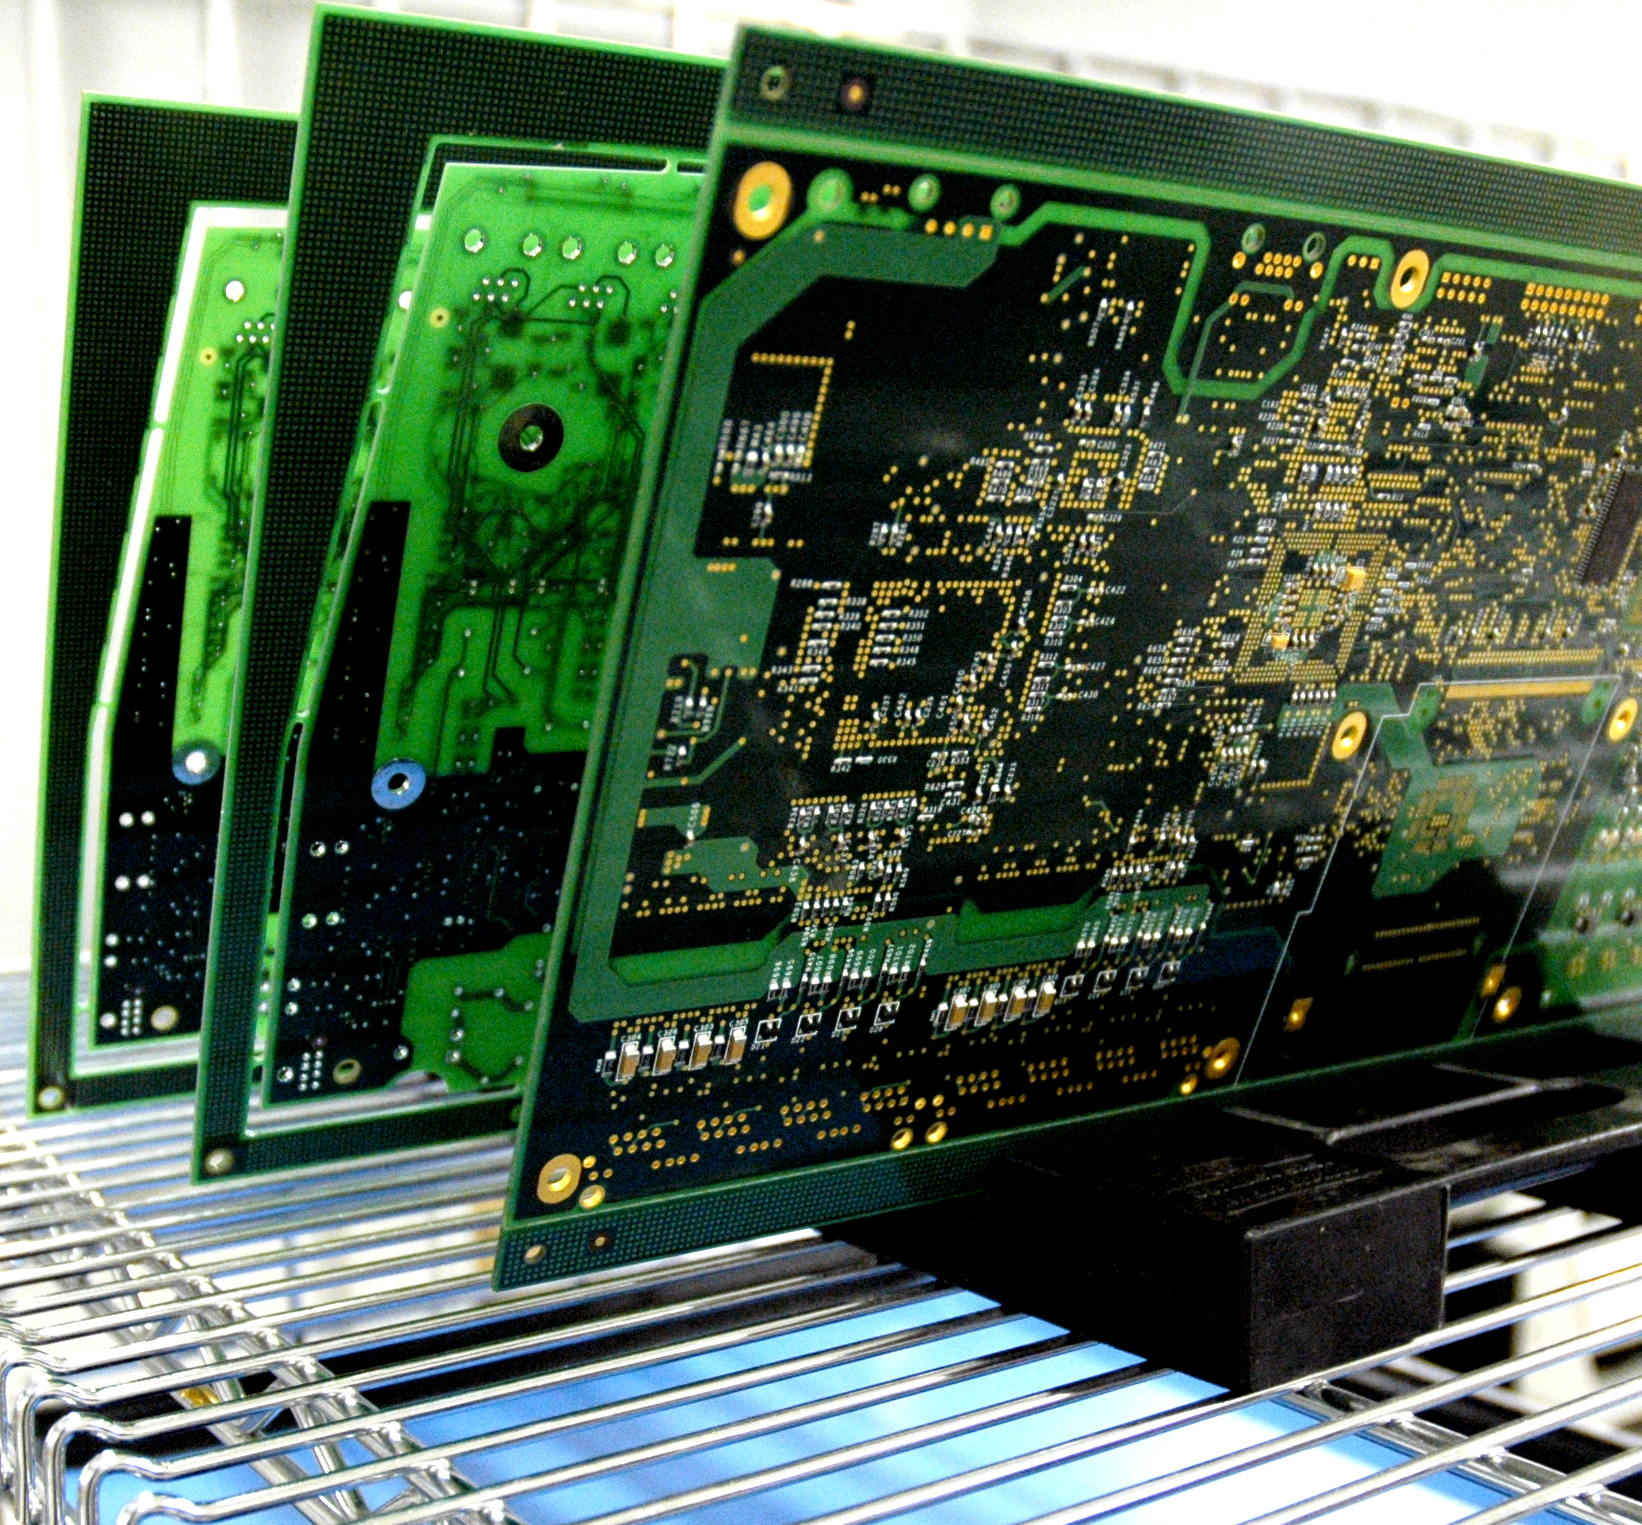 Federal Electronics Introduces Fully Integrated Ems Solution For Image Lead Free Pcb Assembly Rohs Printed Circuit Board Assemblies Uniquely Combines Four Key Production Processes Fiber Interconnect Copper Mixed Technology